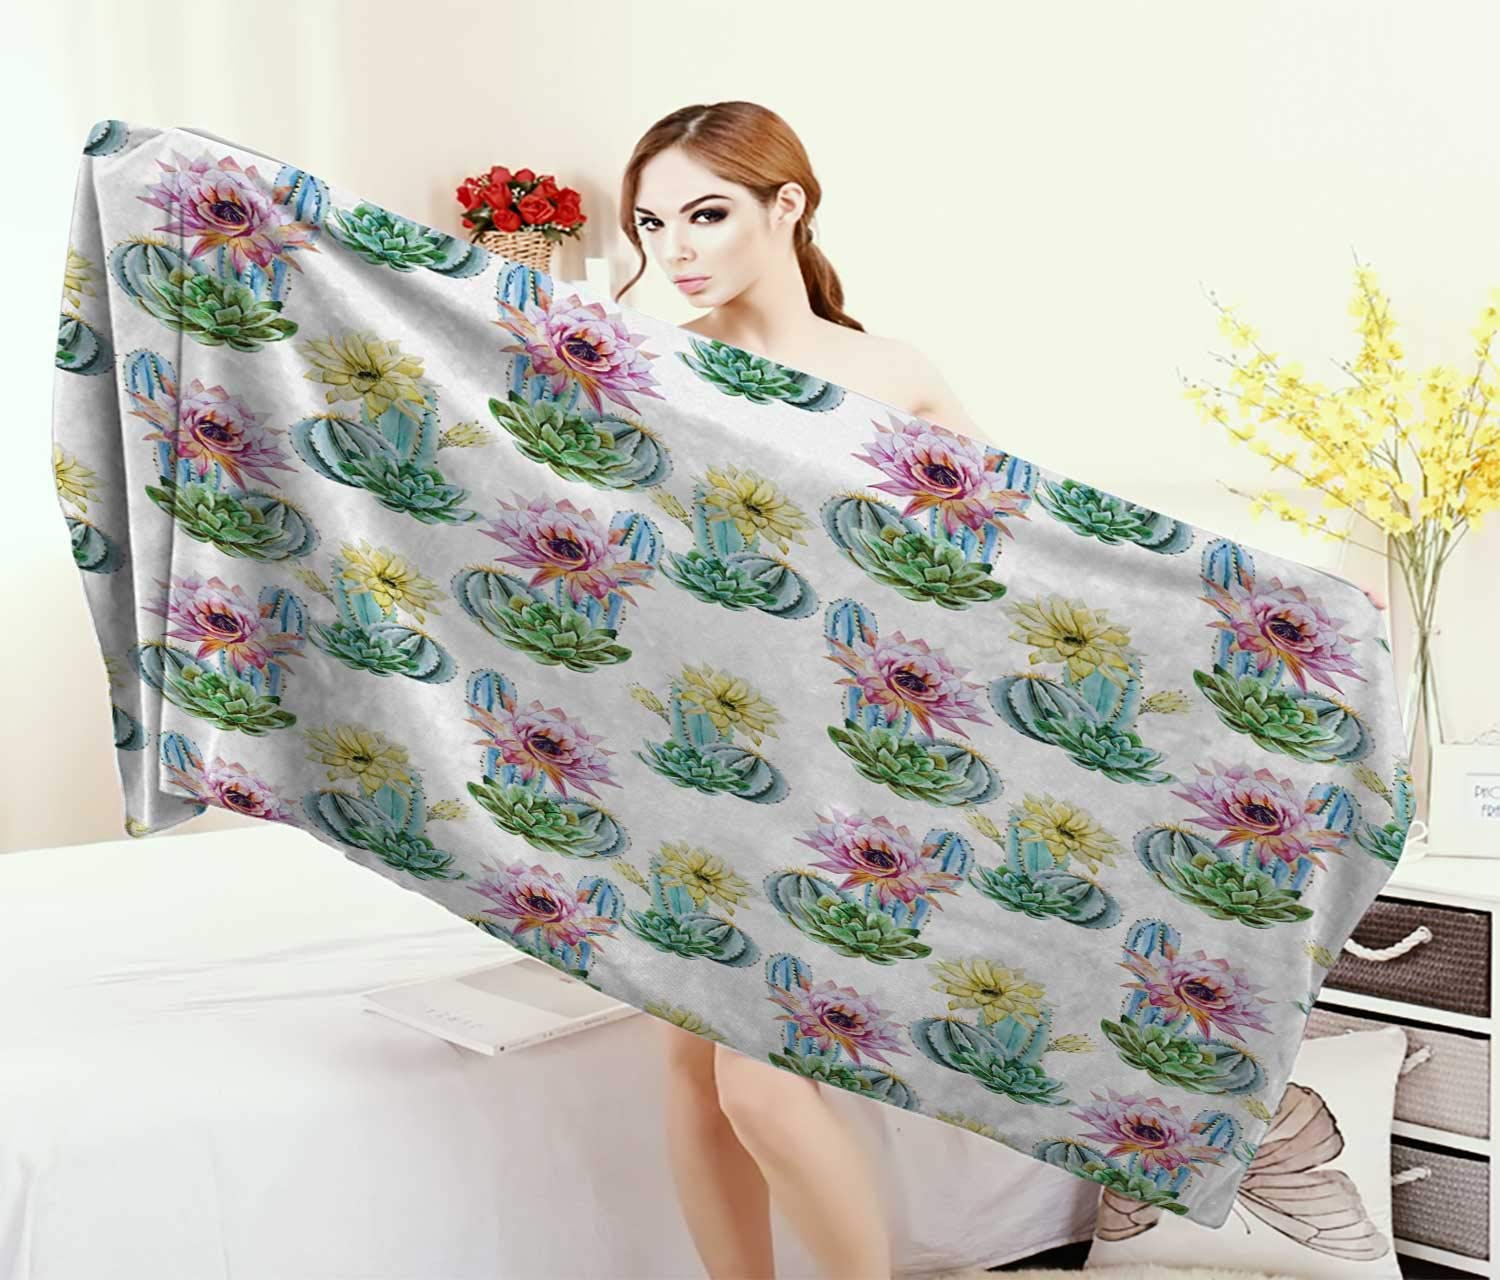 Anniutwo Cactus,Bath Towel,Hot Desert in South Mexican Land Vintage Plant Cactus Flowers Spikes,Bathroom Towels,Pink Green Blue Size: W 31.5'' x L 63''